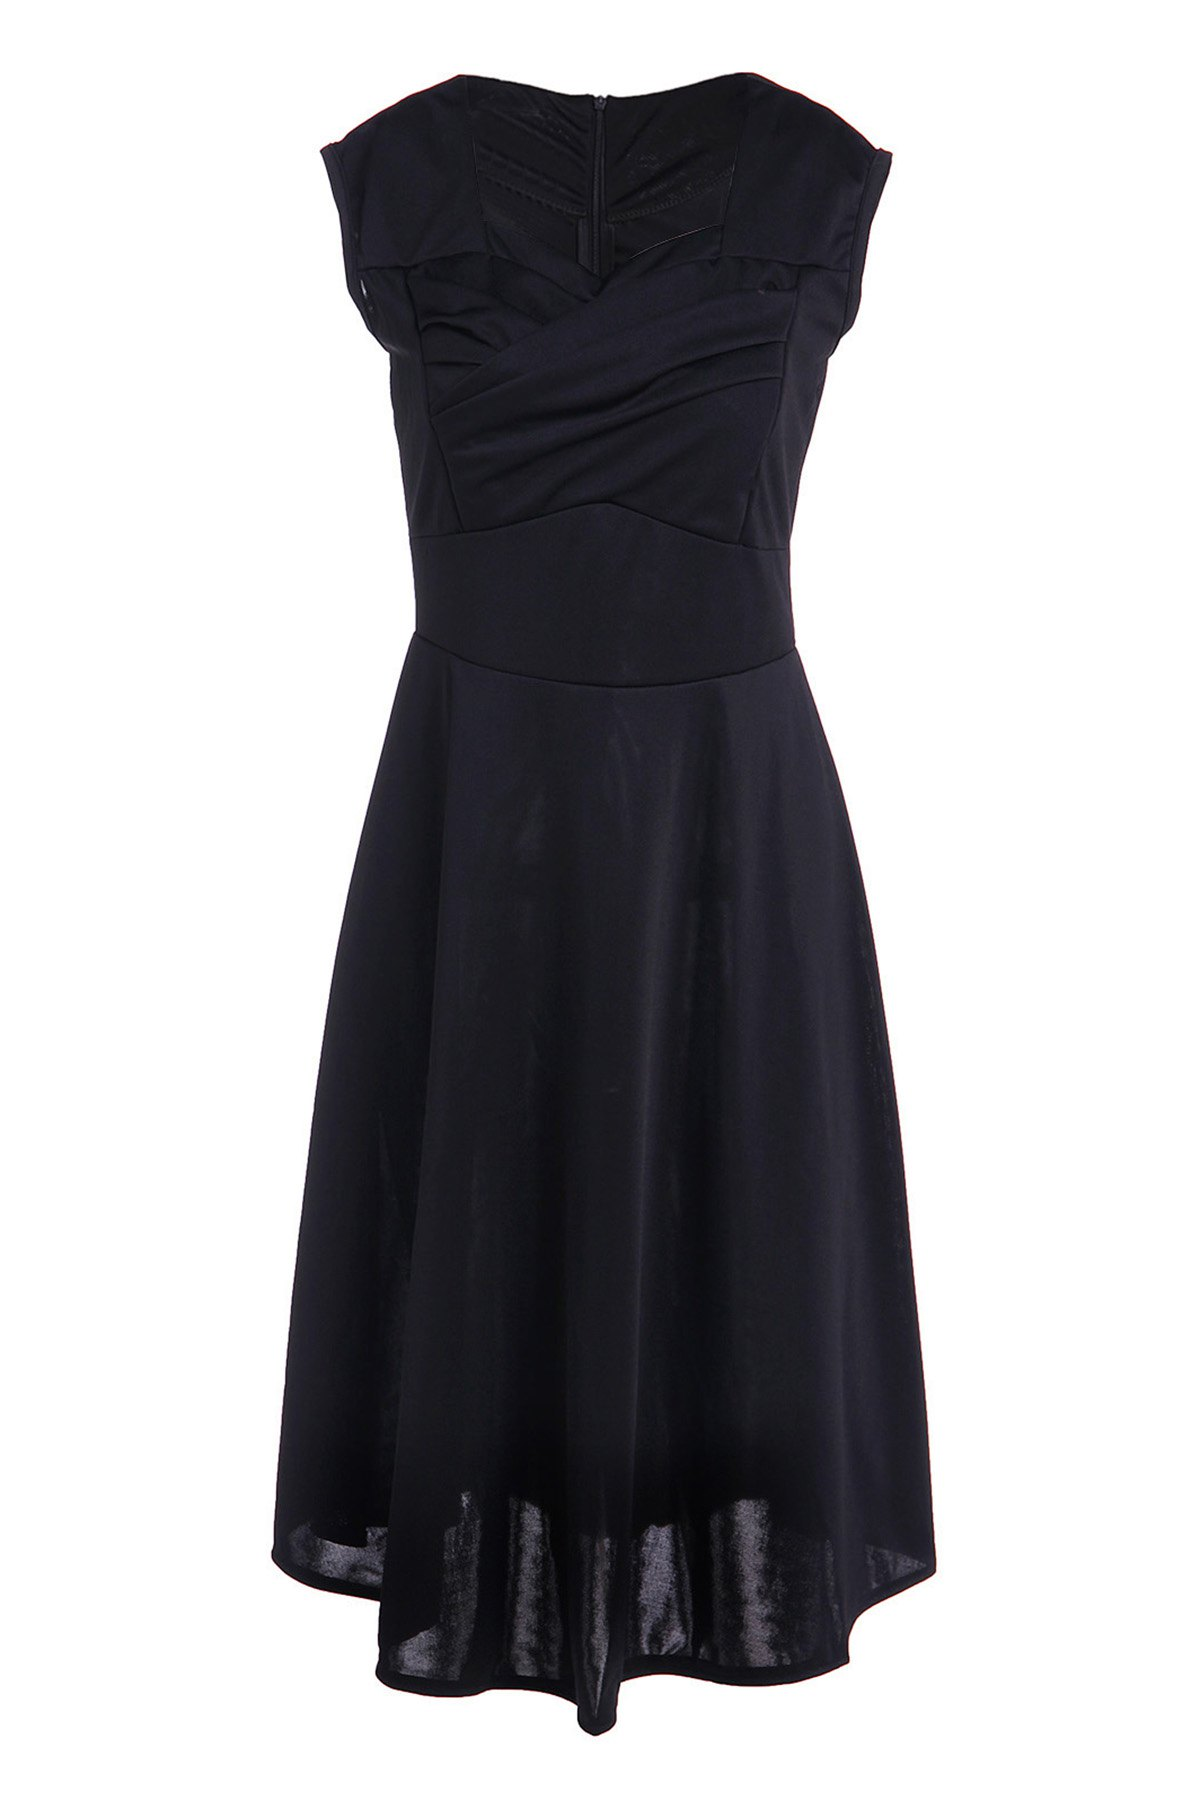 Vintage Pure Color Sweetheart Neck Sleeveless Dress For Women - BLACK L